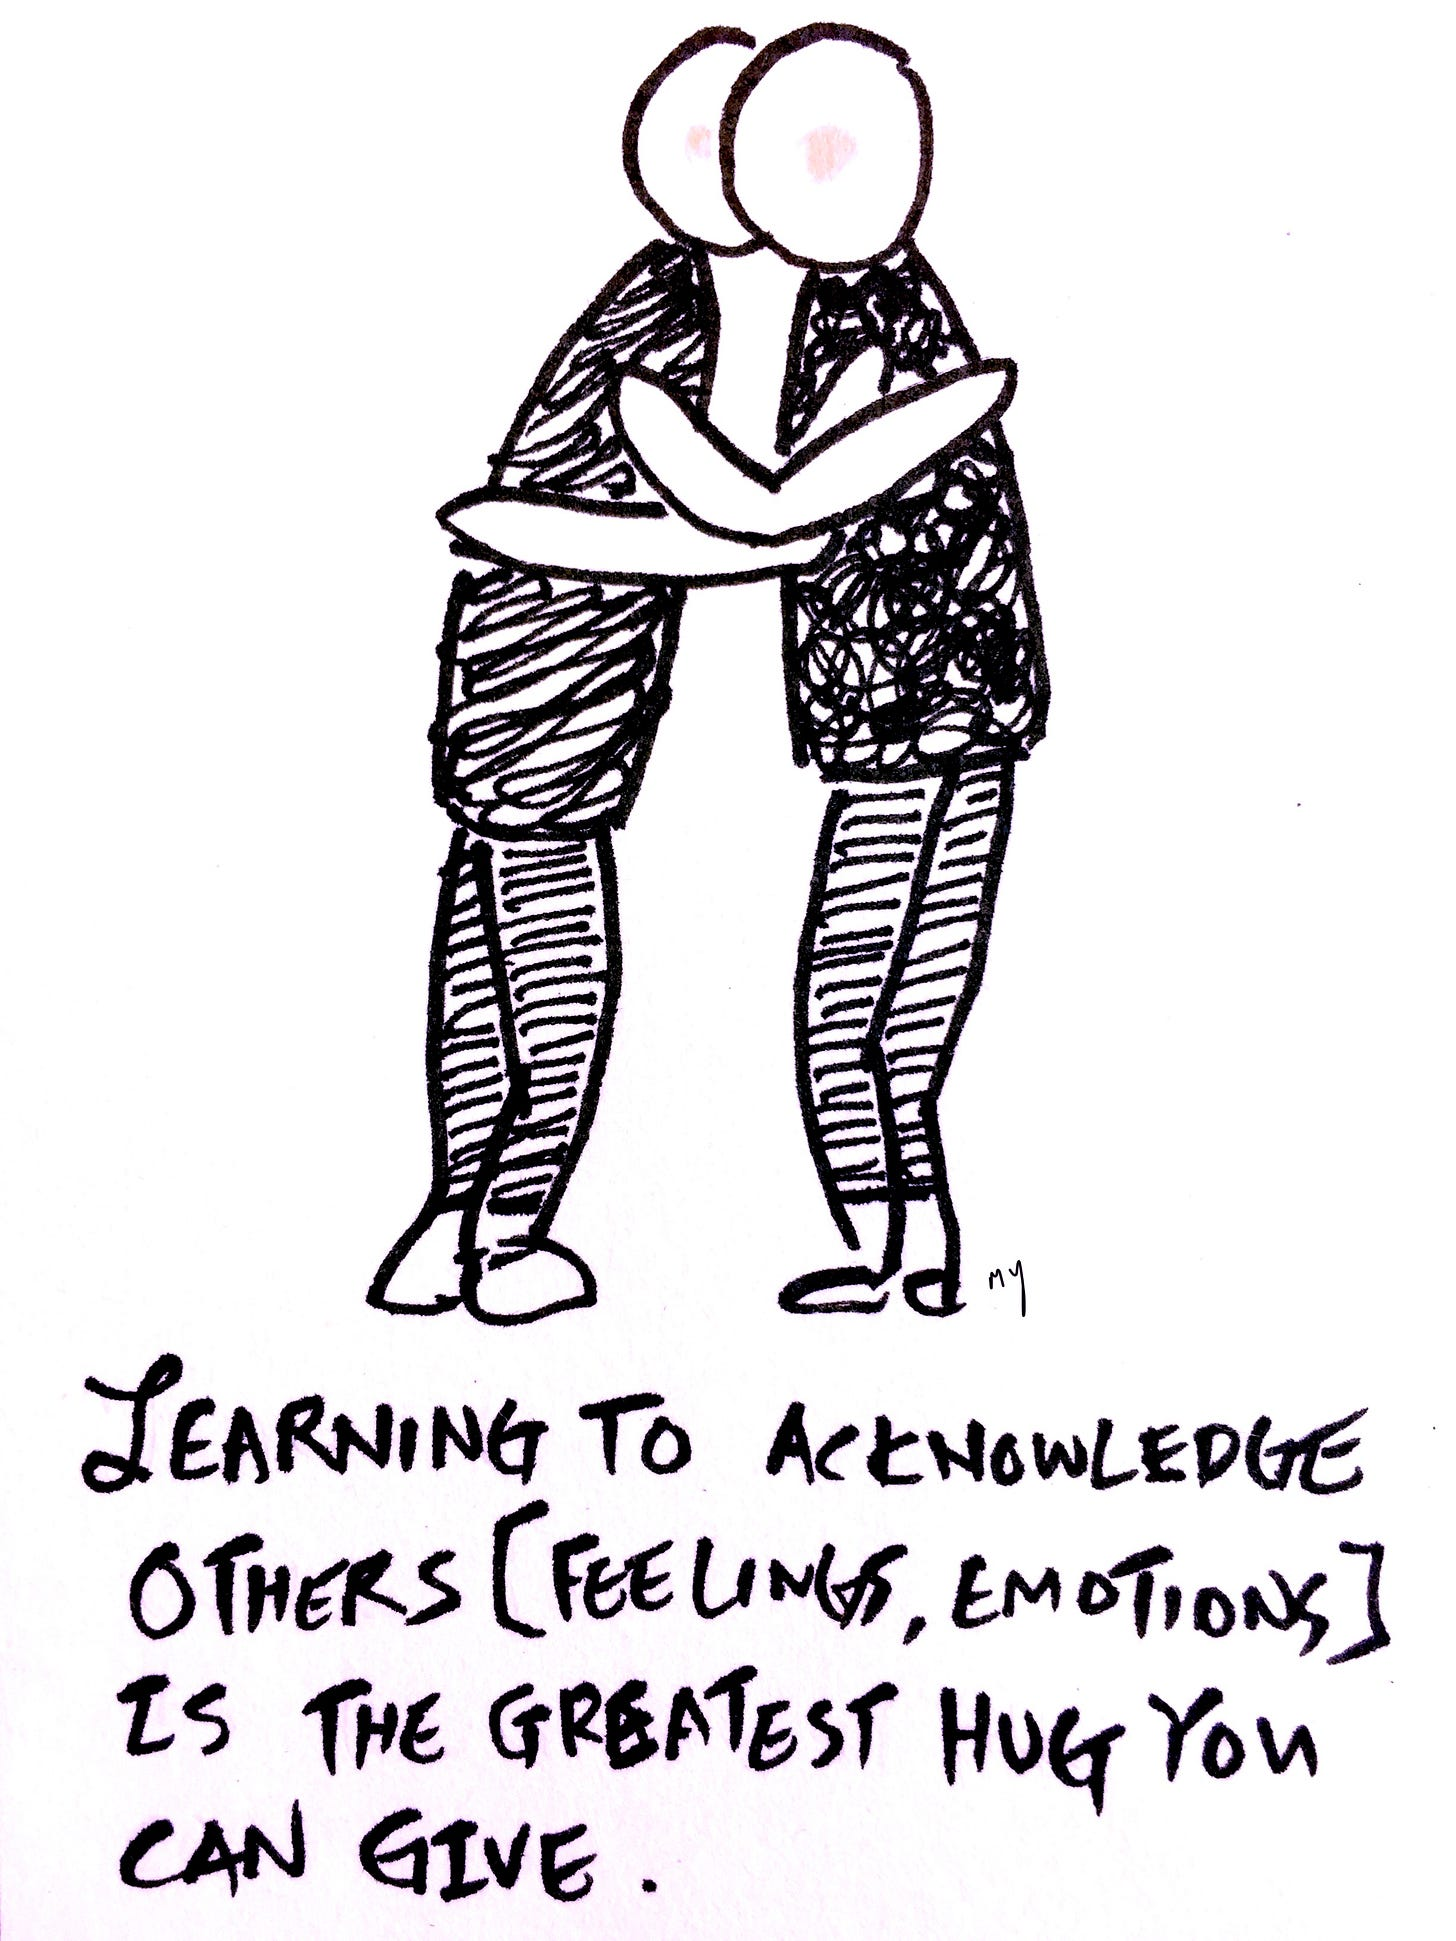 The last panel showed the two people hugging. The caption reads: Learning to acknowledge others [feelings and emotions] is the greatest hug you can give.